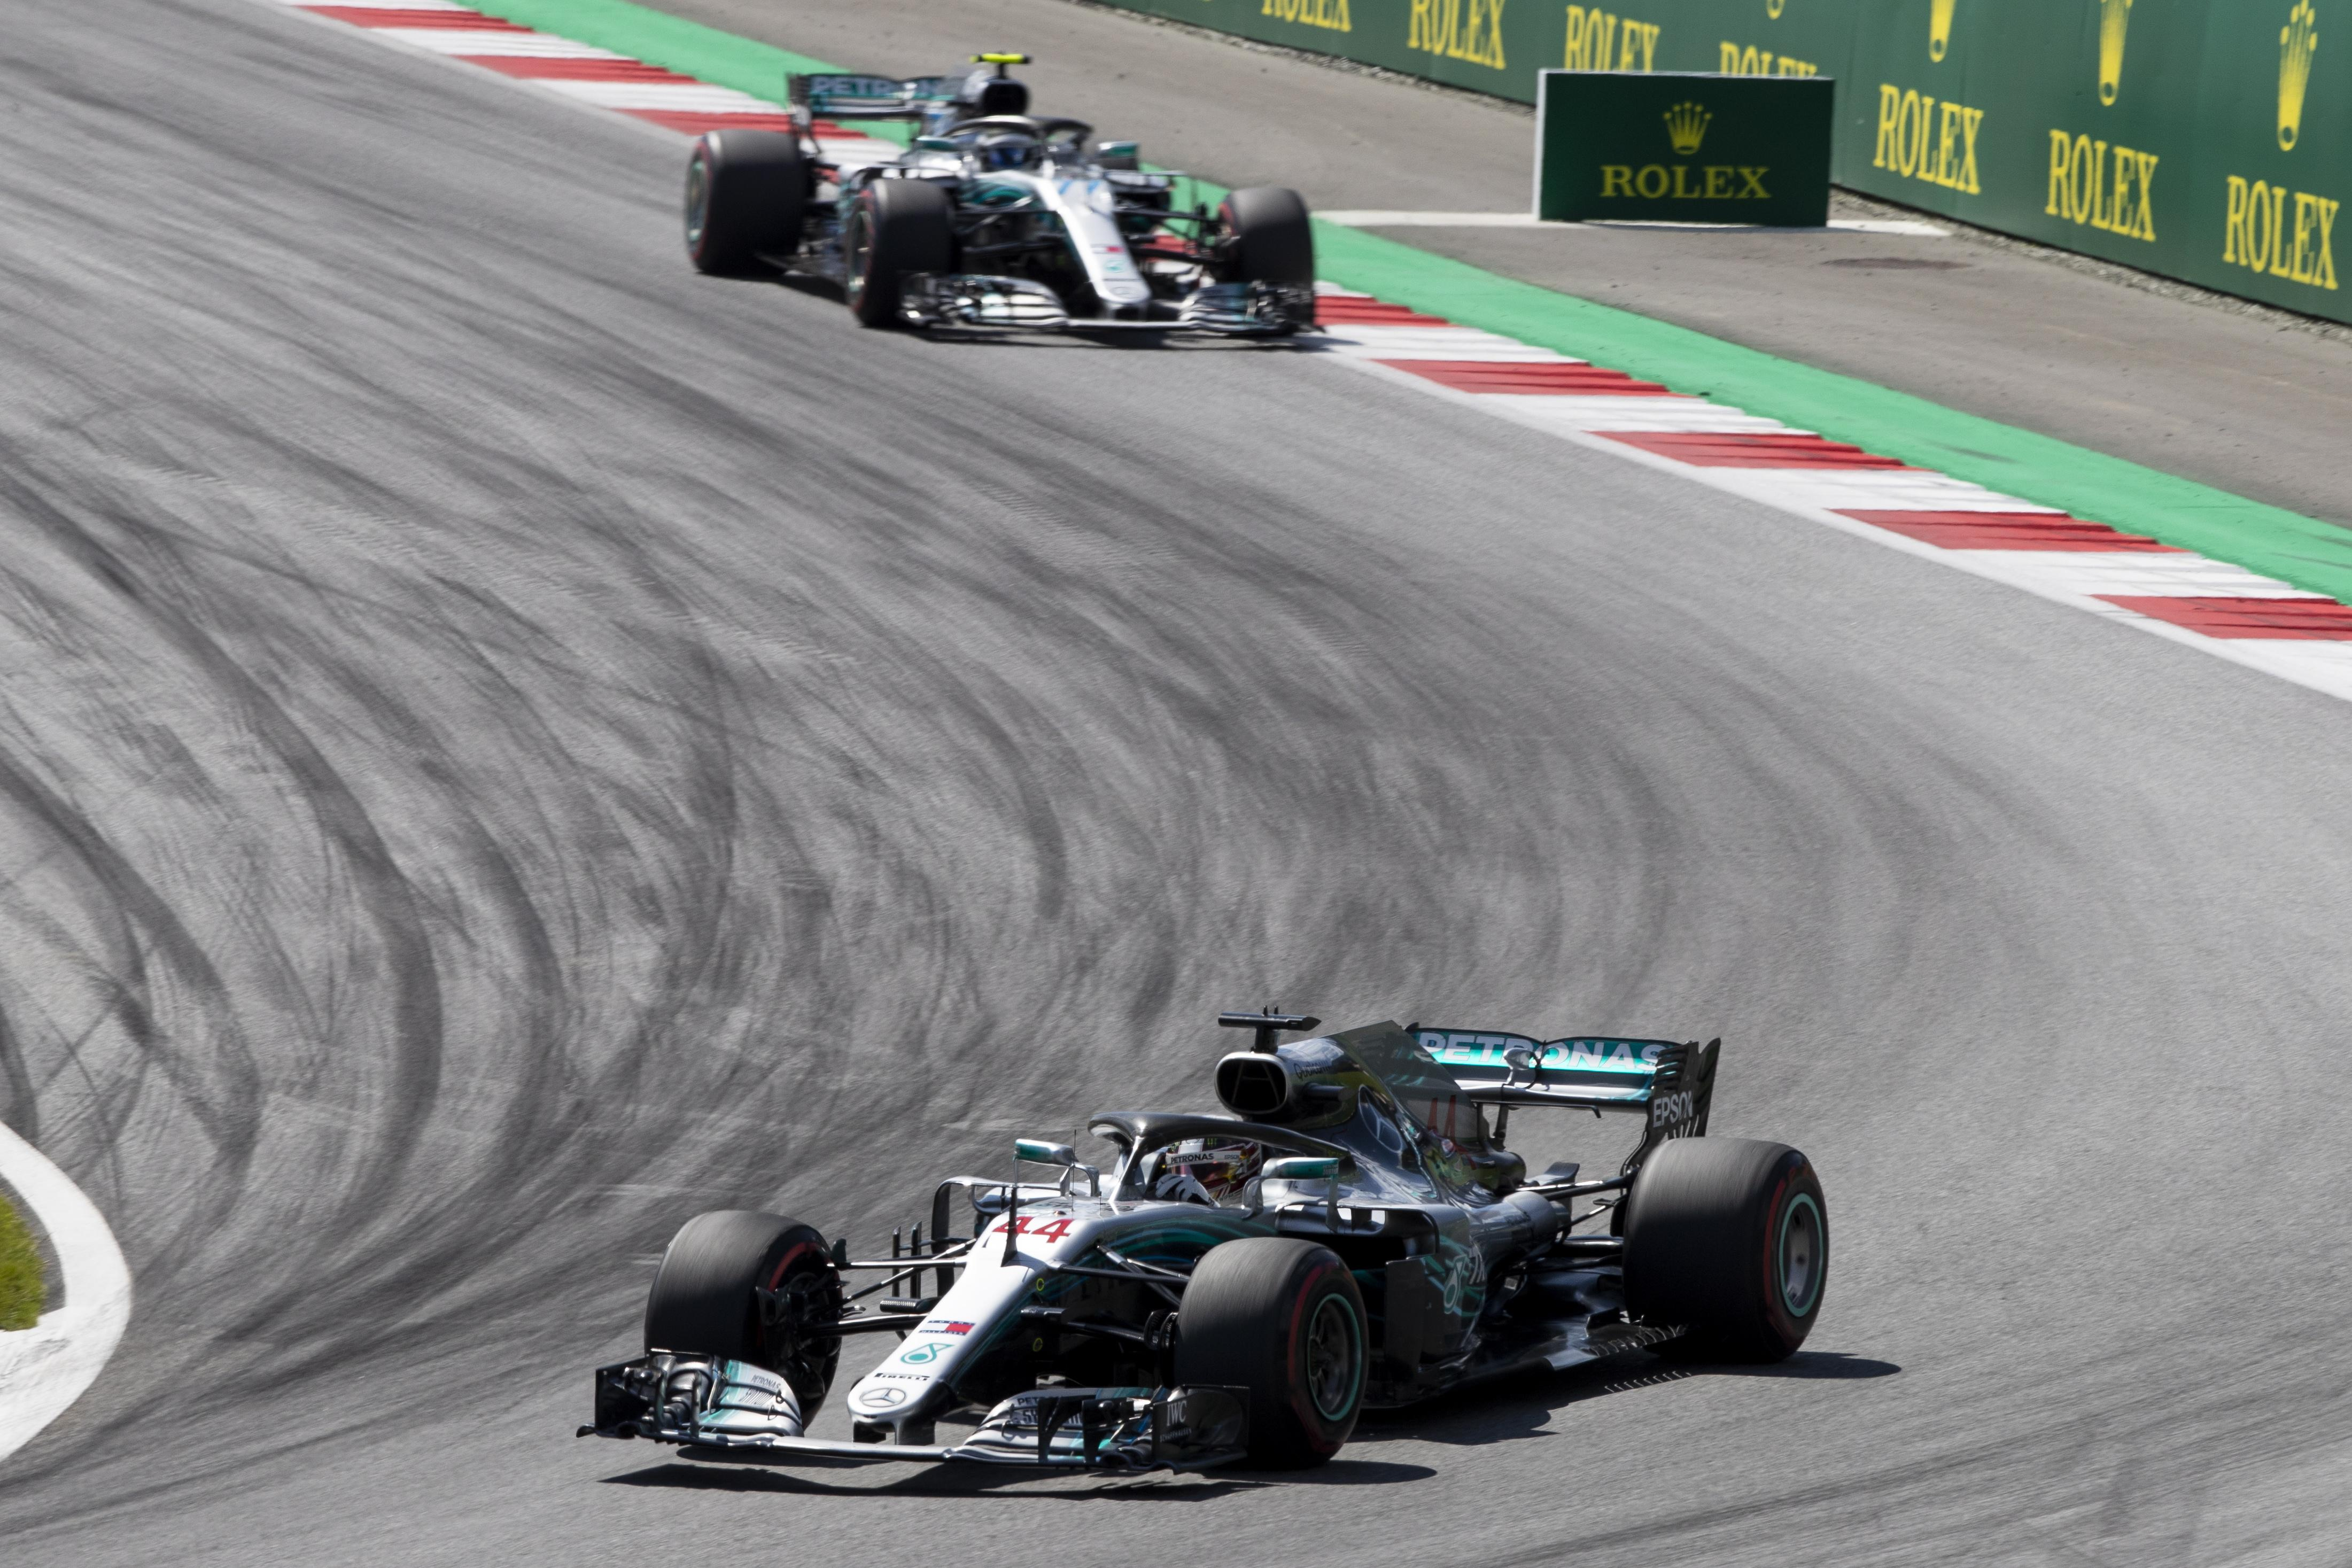 Hamilton complained that Mercedes failed to bring him into the pits during a Virtual Safety Car following his team-mate Valtteri Bottas' retirement